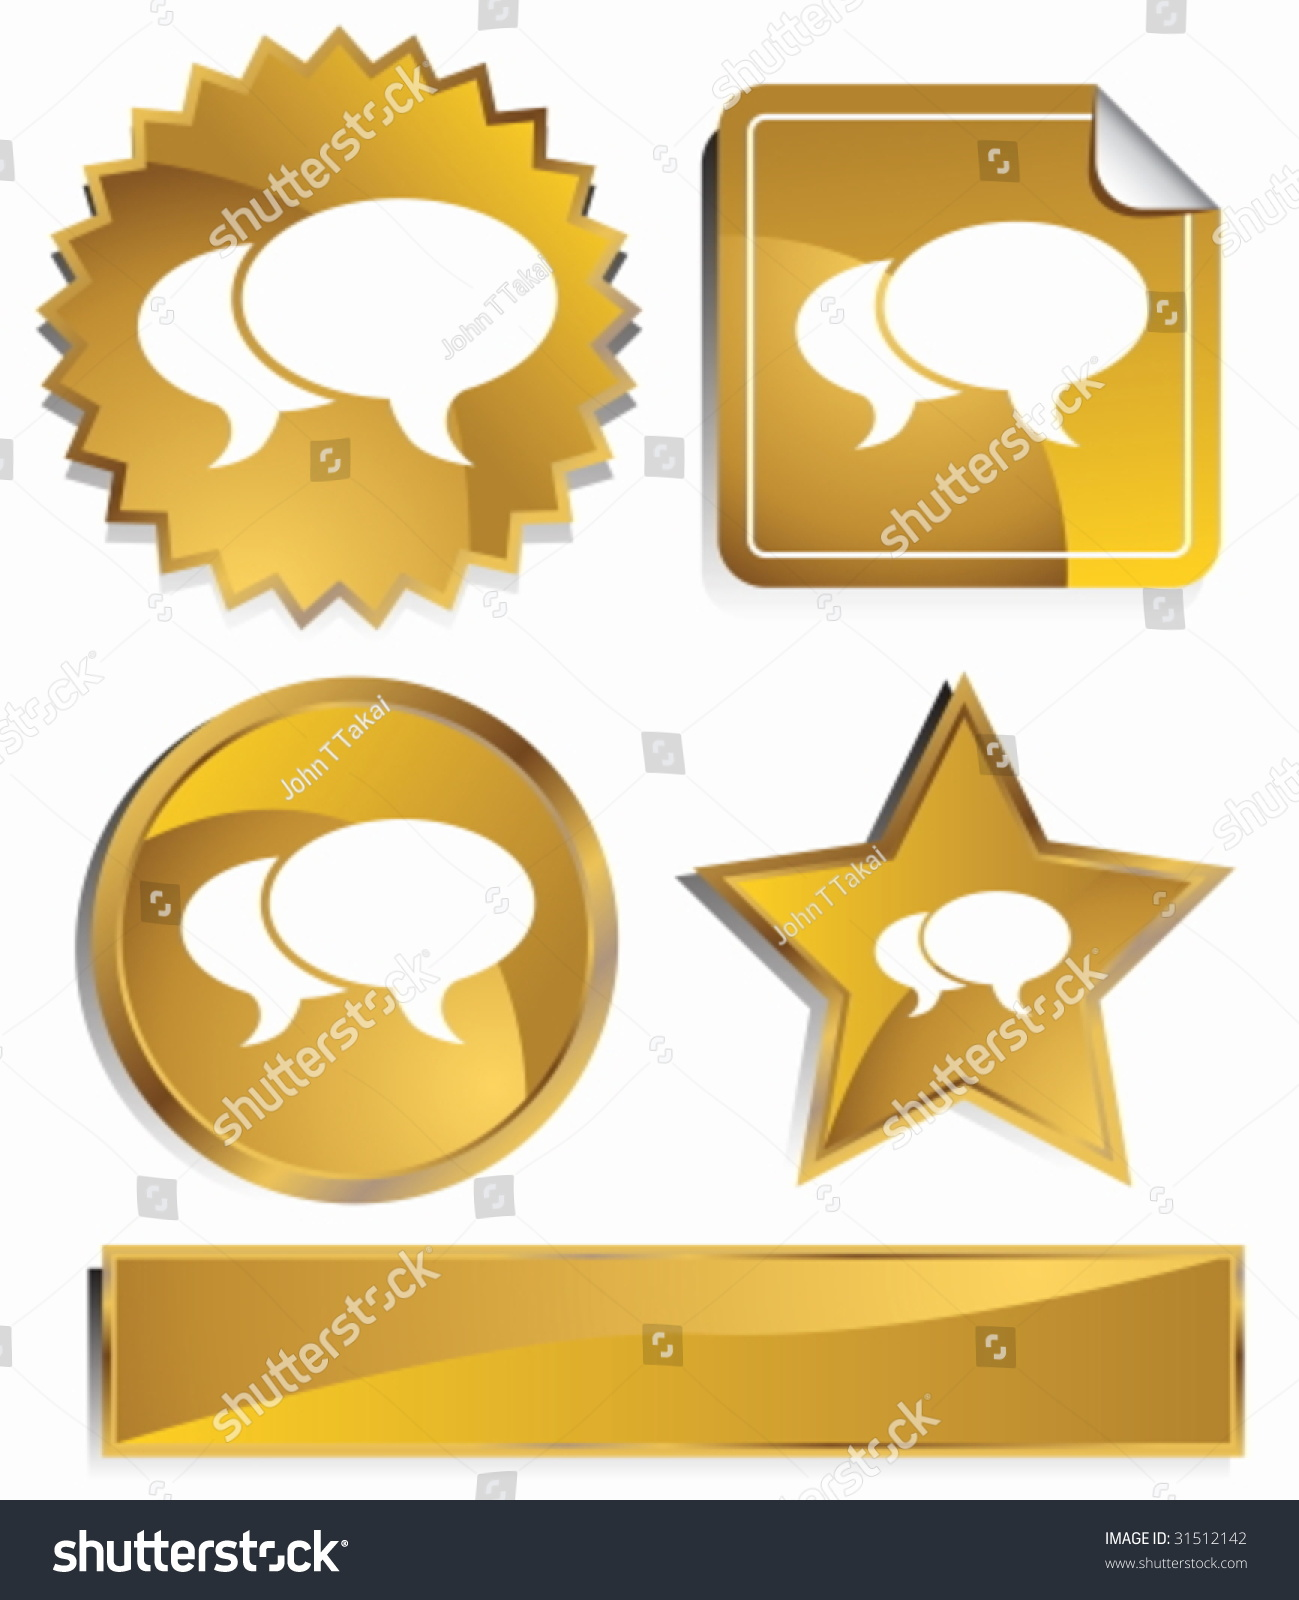 Stock market icon set gold satin stock vector 31512142 shutterstock stock market icon set gold satin metal buttons in star starburst circle and biocorpaavc Images